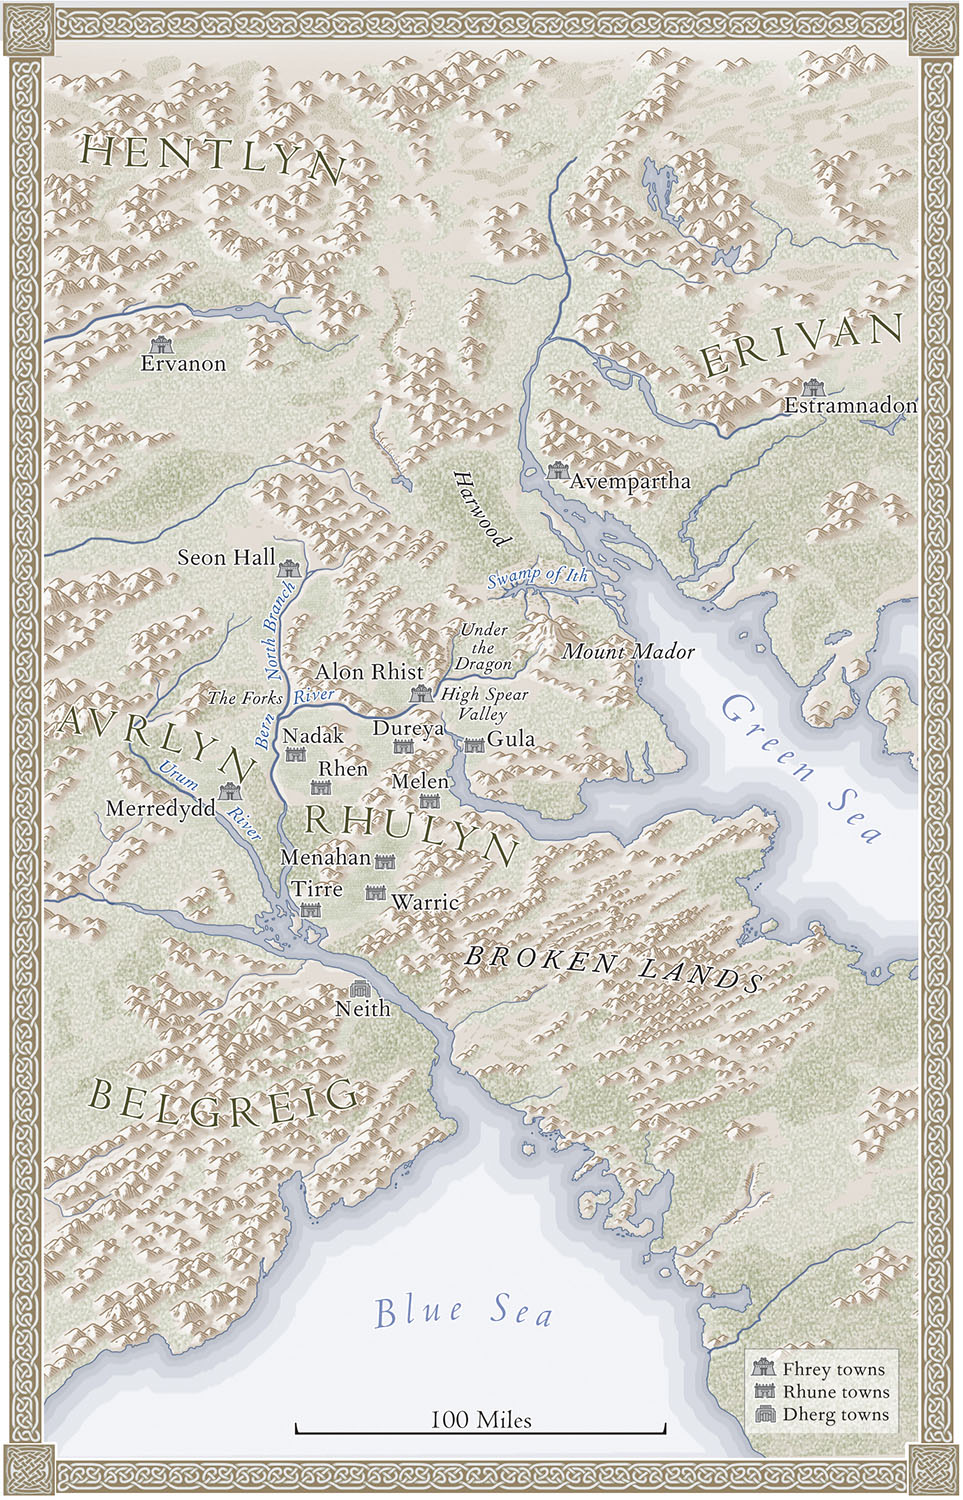 For    Age of Myth,      by Michael J. Sullivan   (Del Rey, 2016).   Map copyright © David Lindroth Inc. 2016. A imaginary world, fleshed out from the author's sketch.